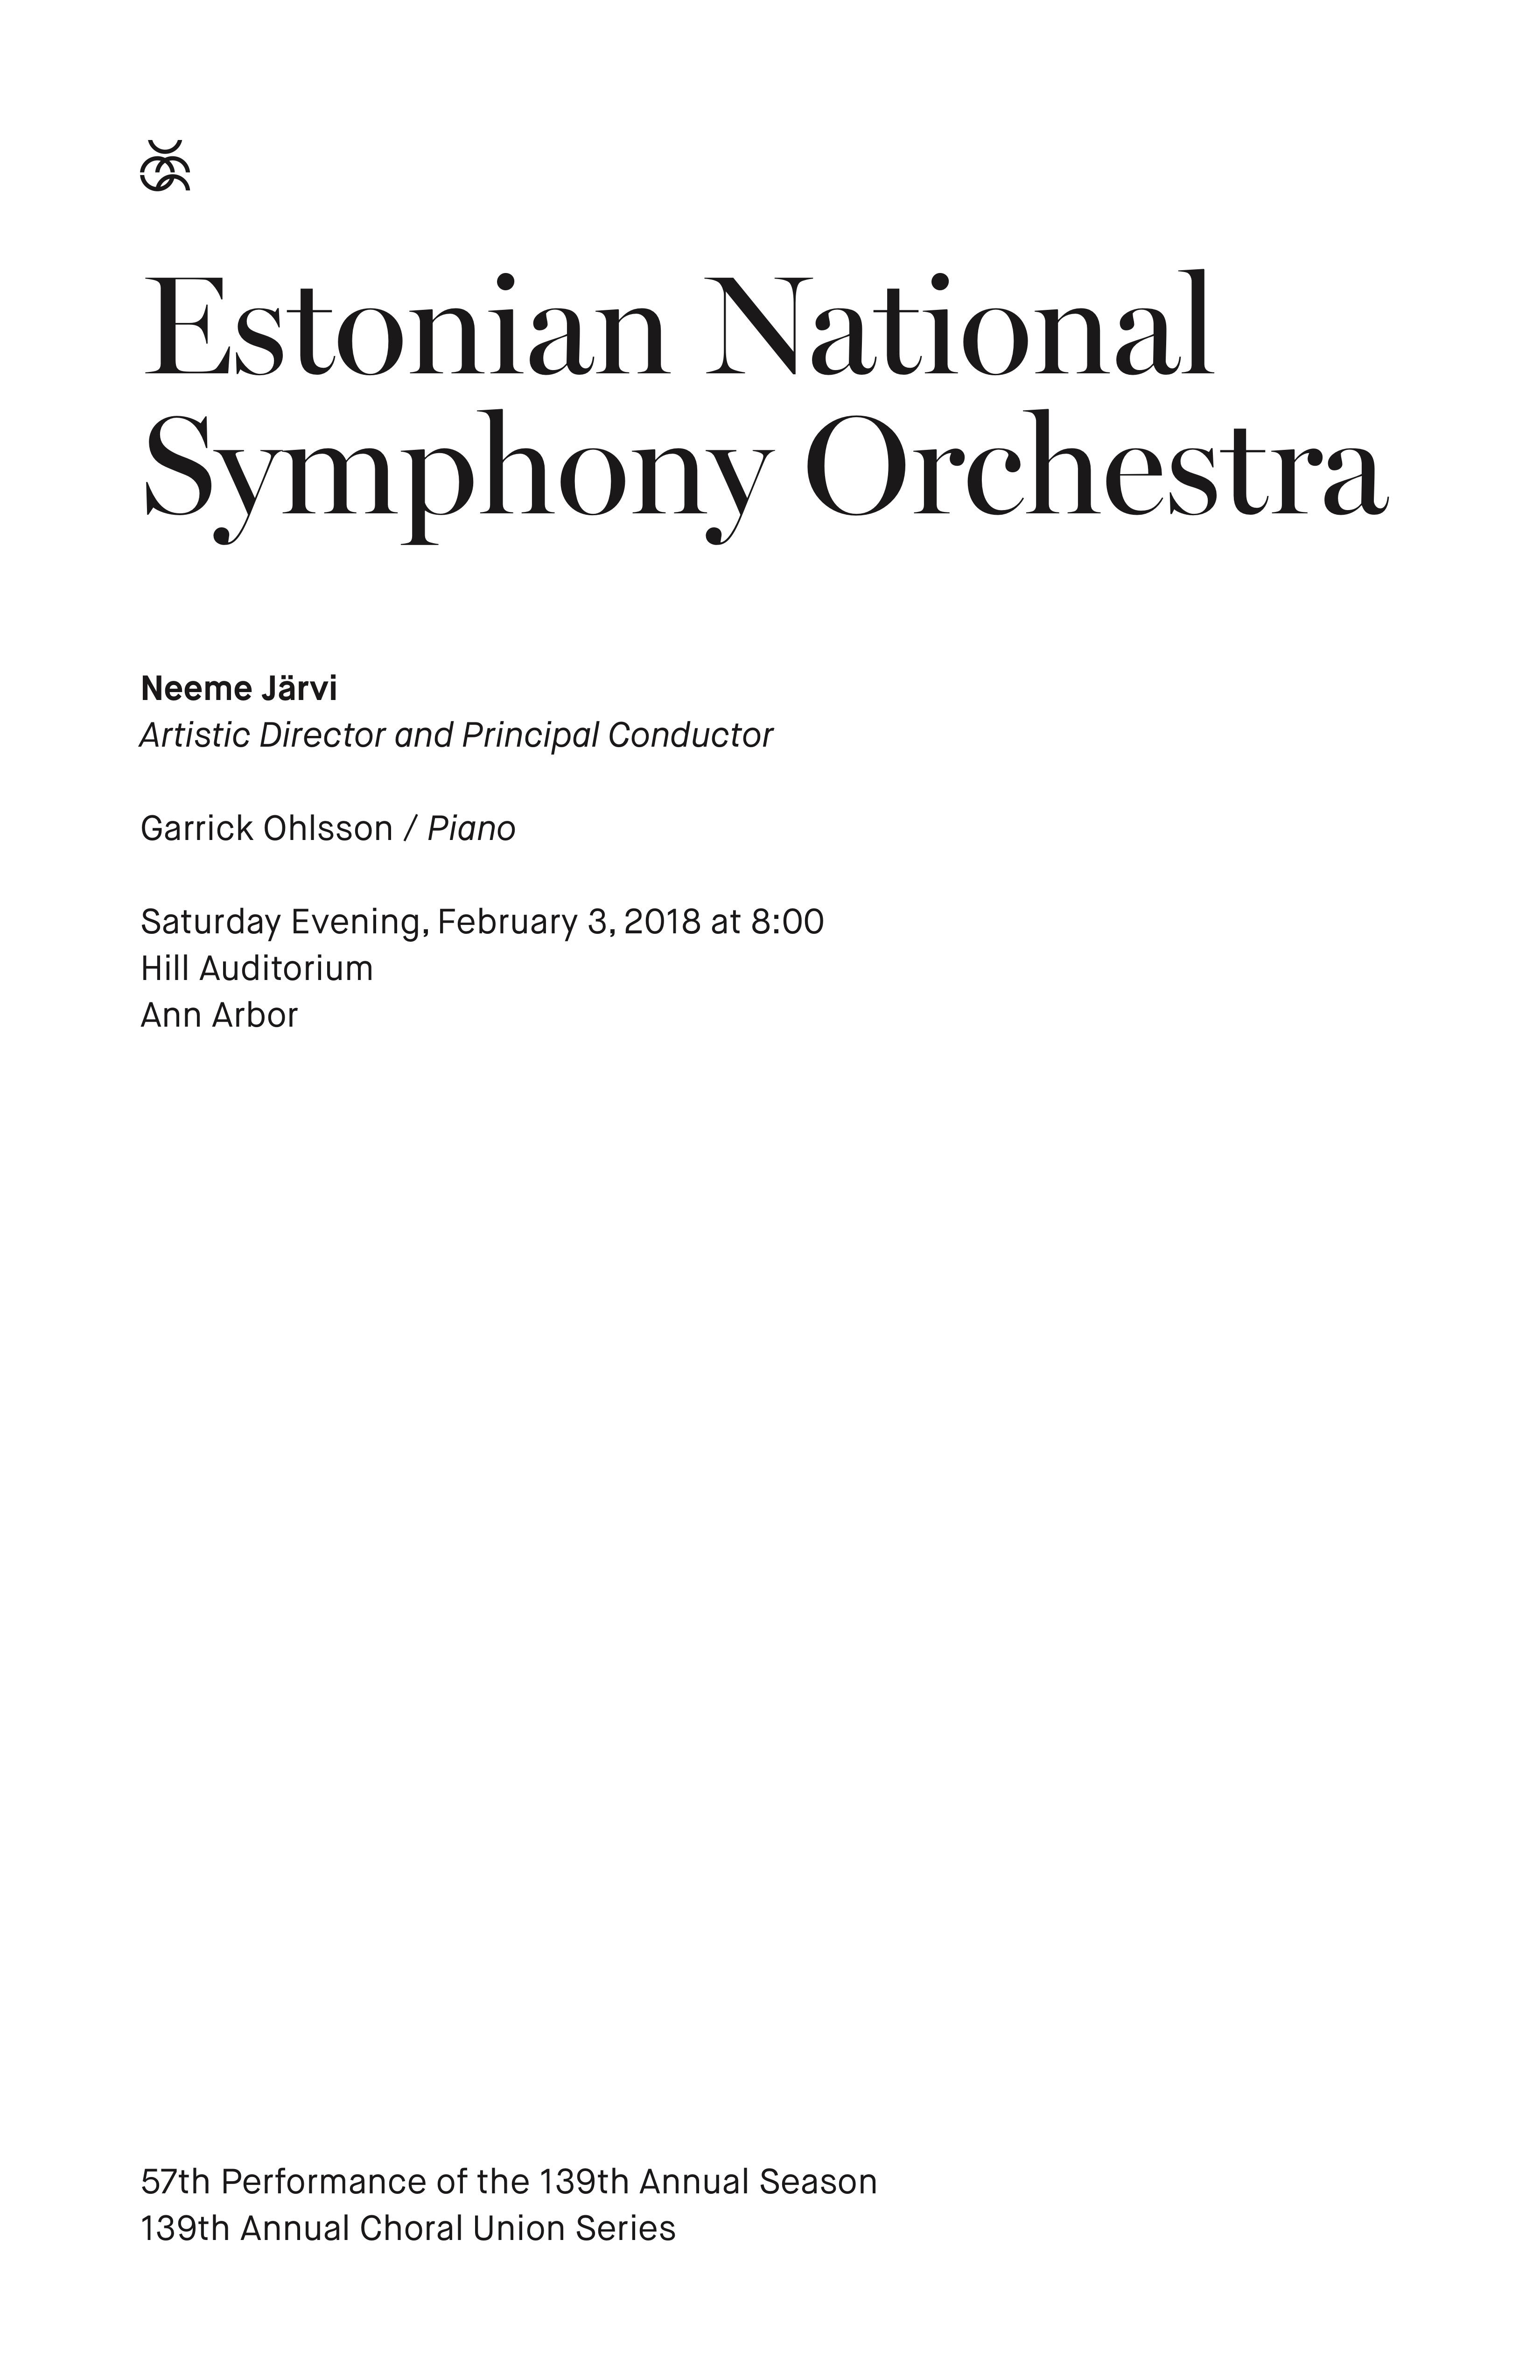 UMS Concert Program, February 3, 2018 - Estonian National Symphony Orchestra image